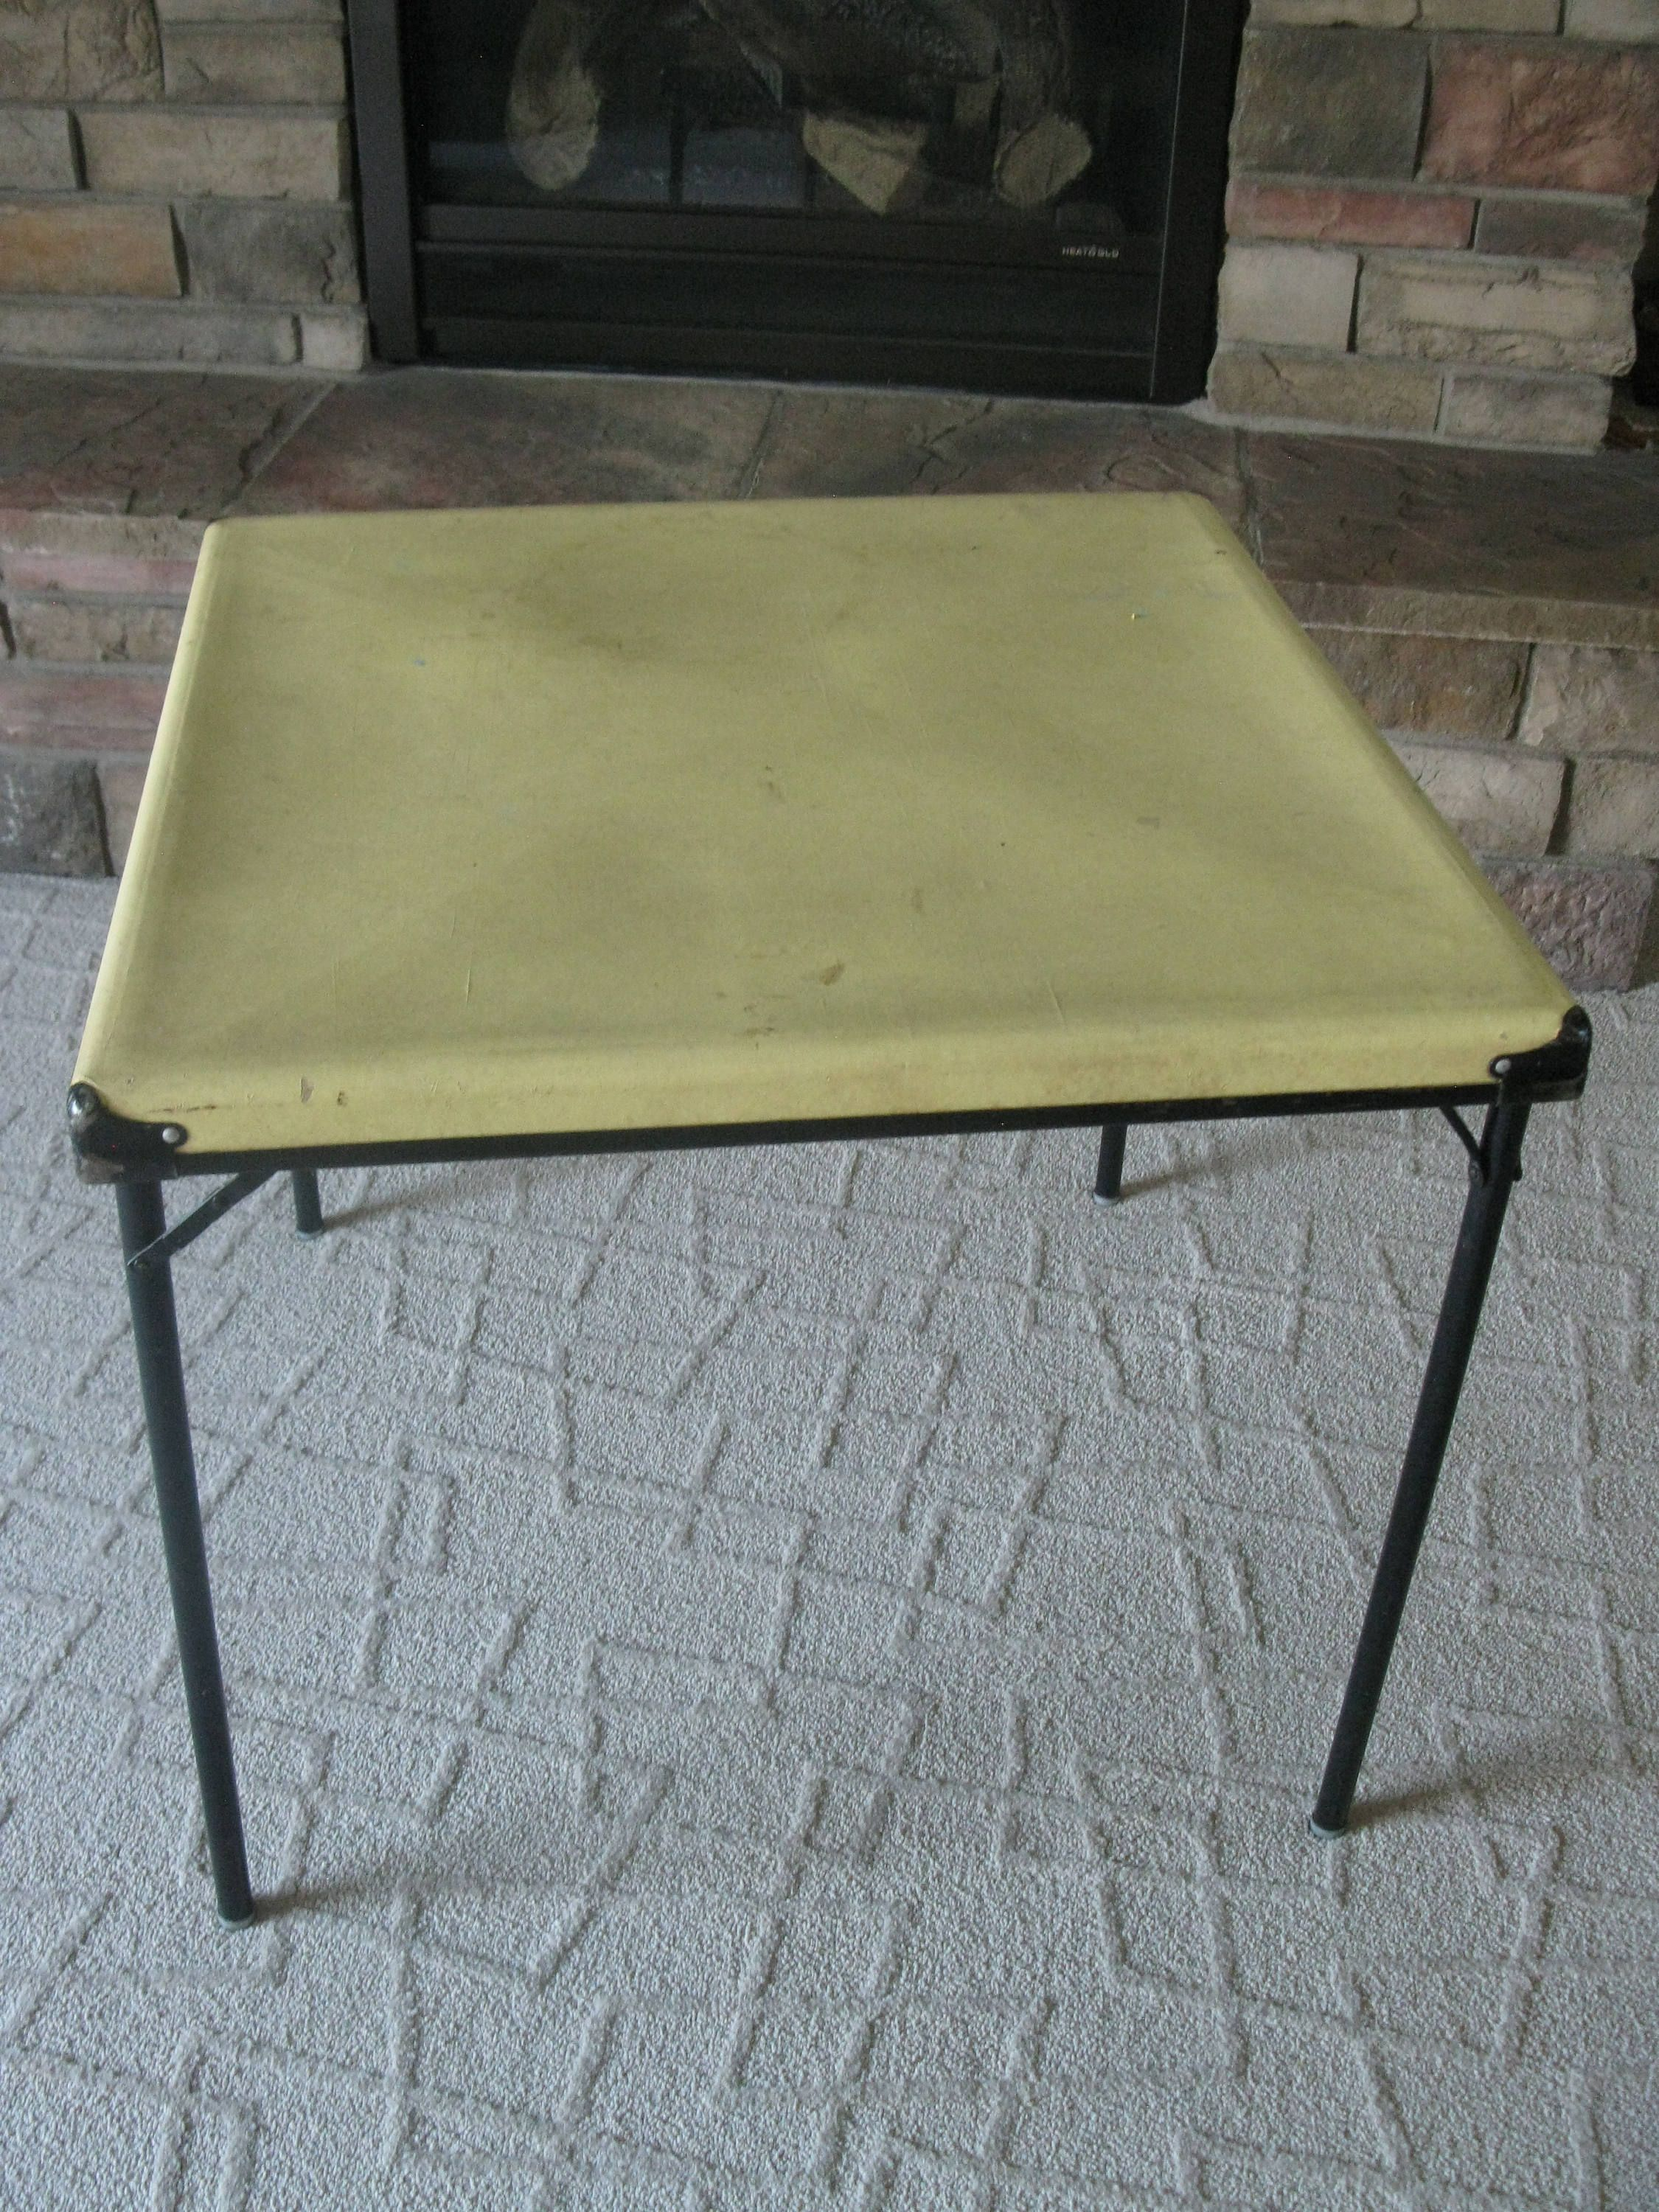 Excellent vintage card table think, you